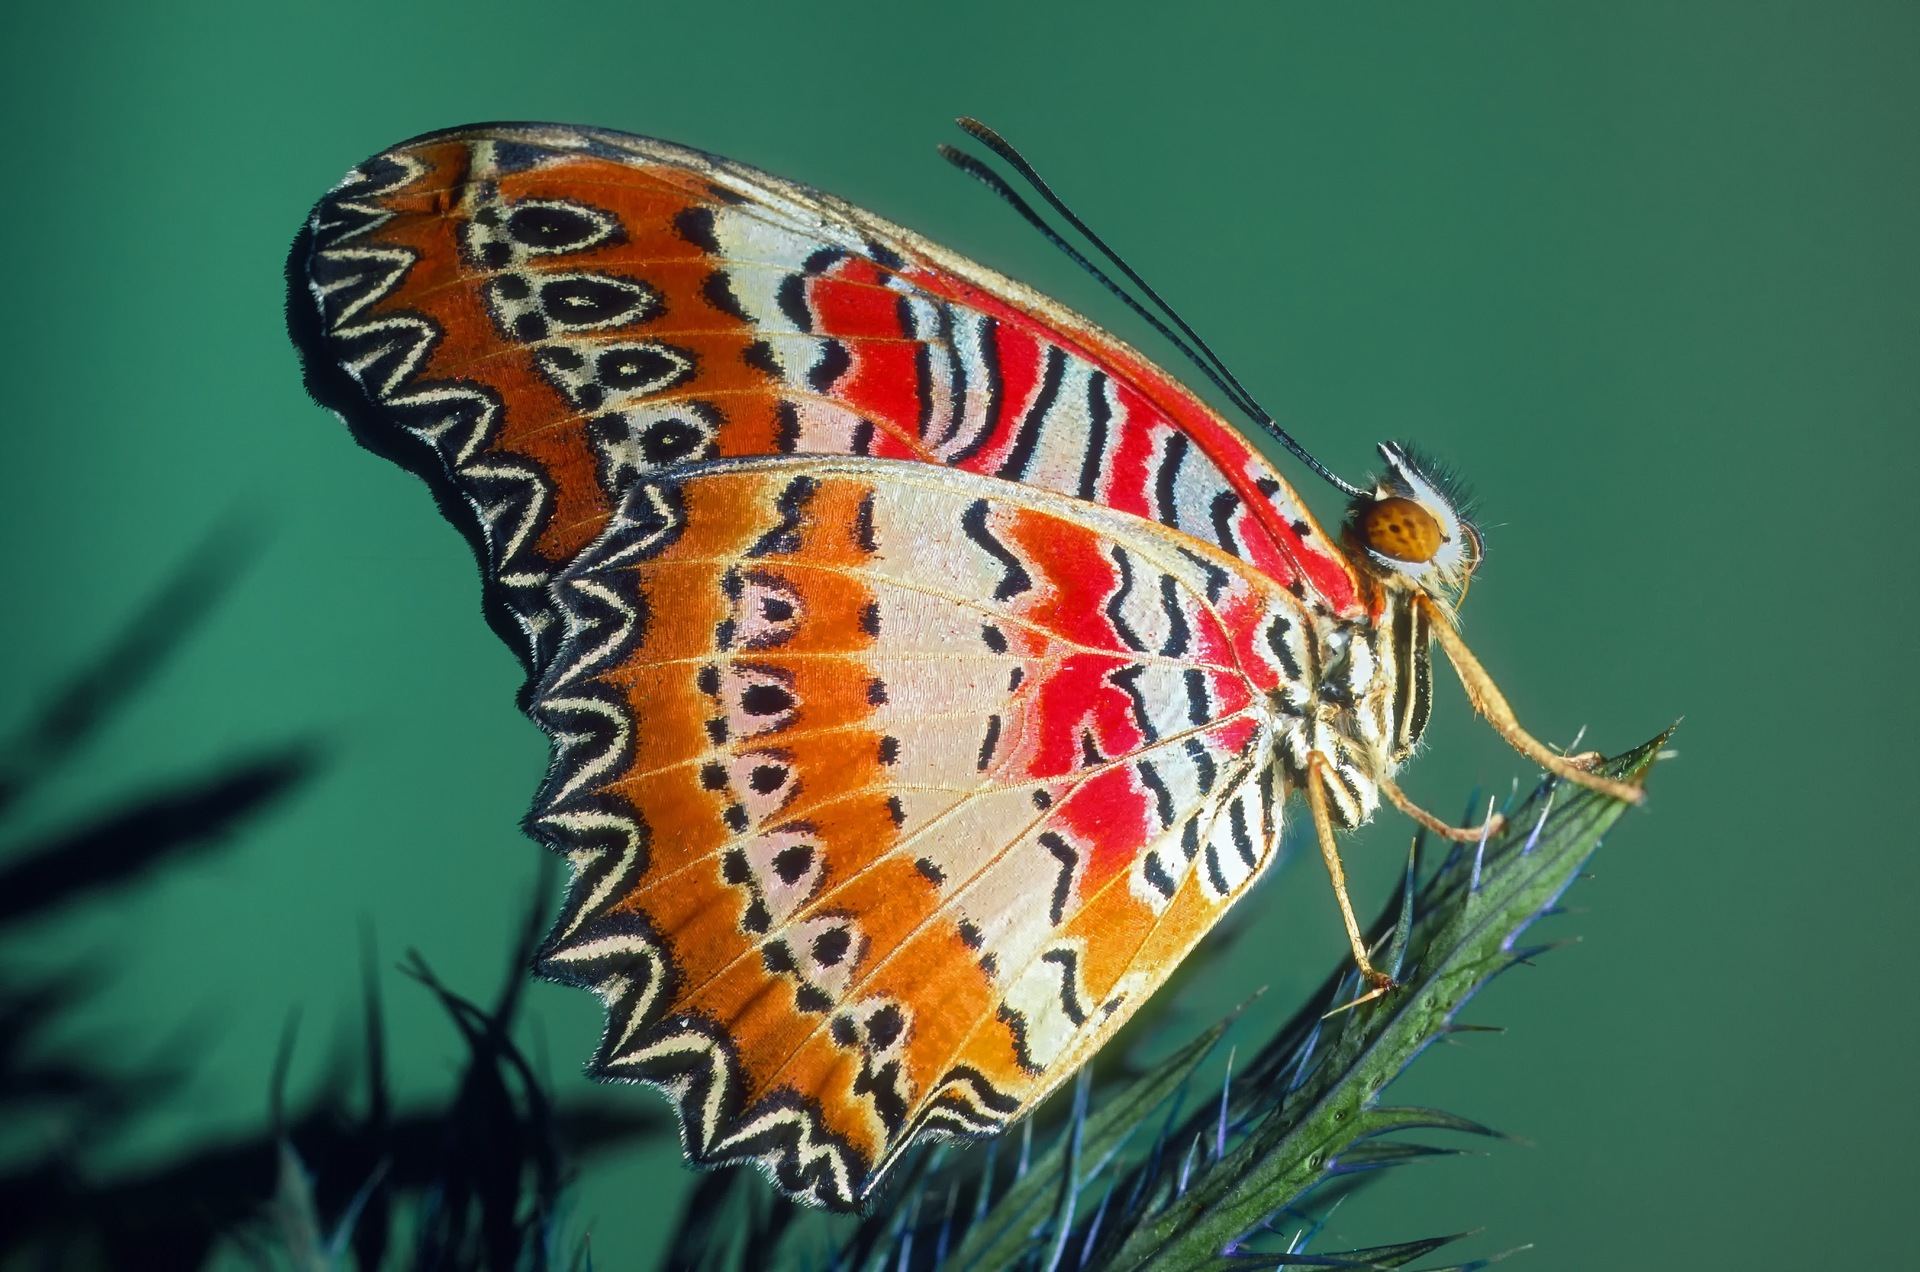 Close up of a Leopard Lacewing butterfly.